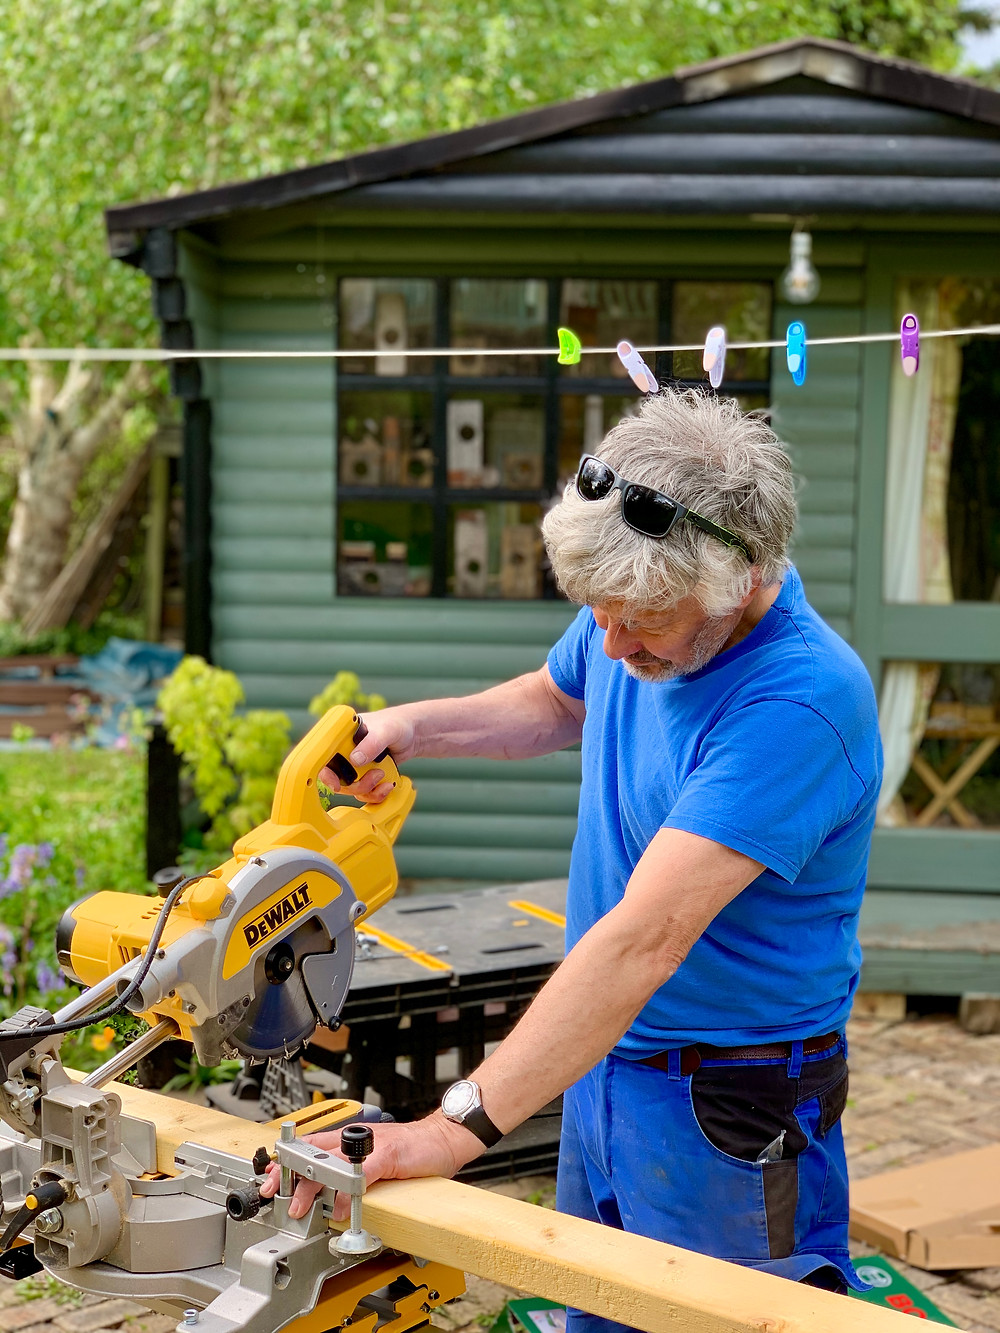 Image of Rob Hain completing a garden project